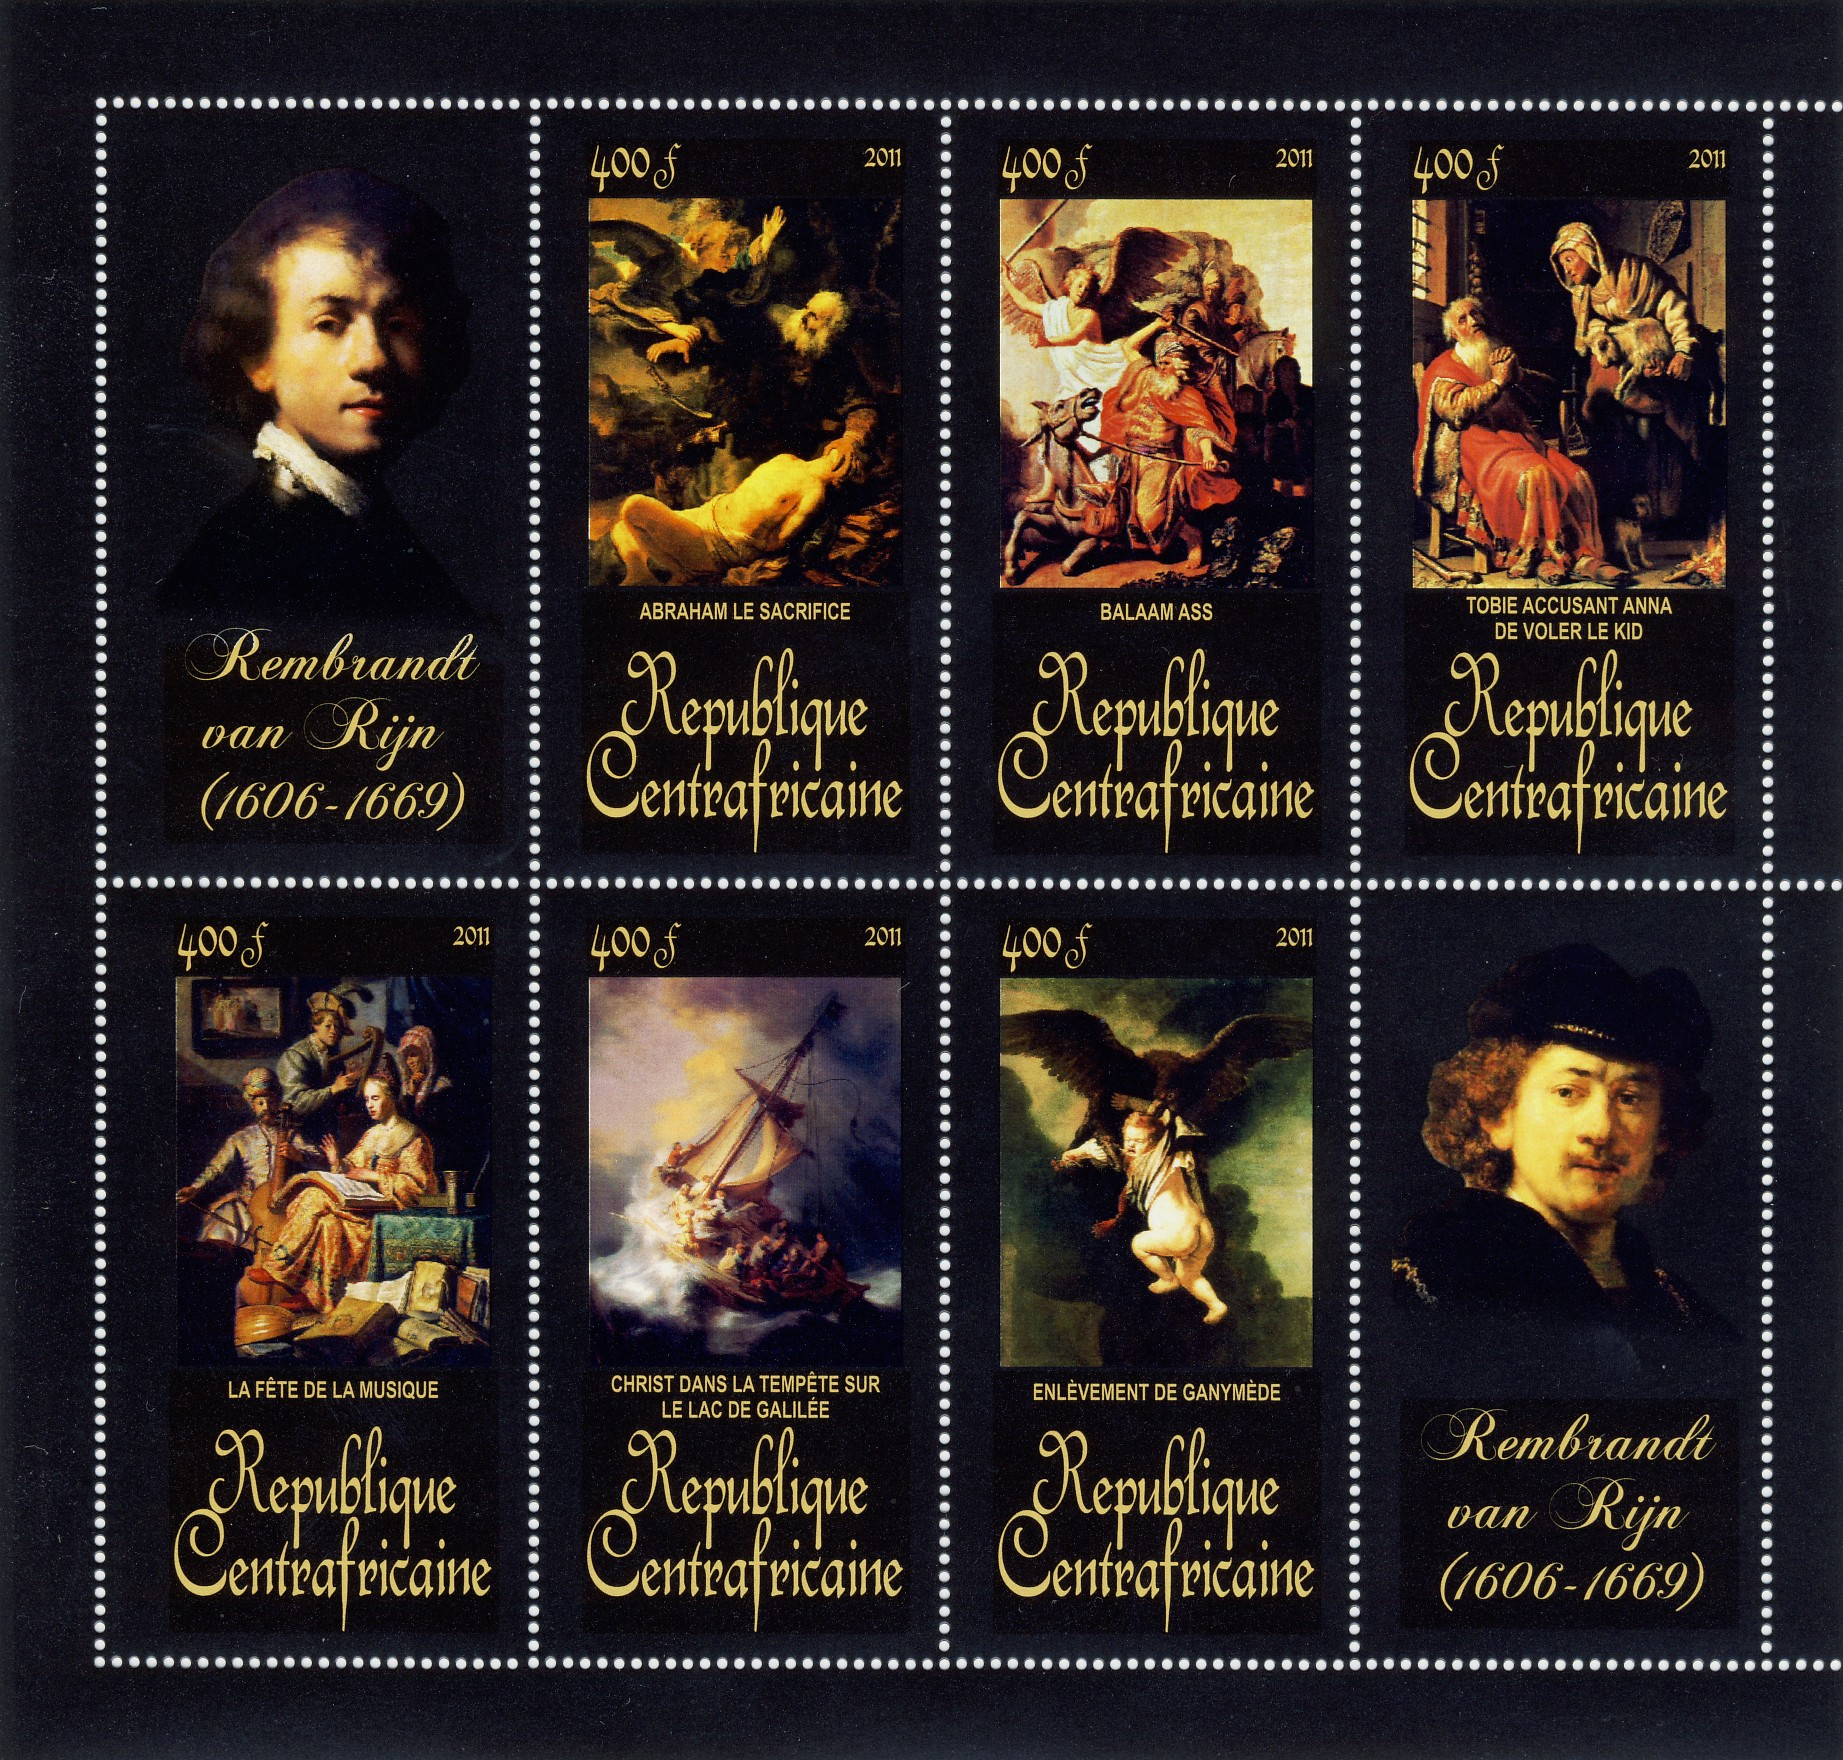 Paintings of Rembrandt van Rijn, (1606-1669). (Abraham le sacrifice, Enlevement de ganymede). - Issue of Central African republic postage stamps